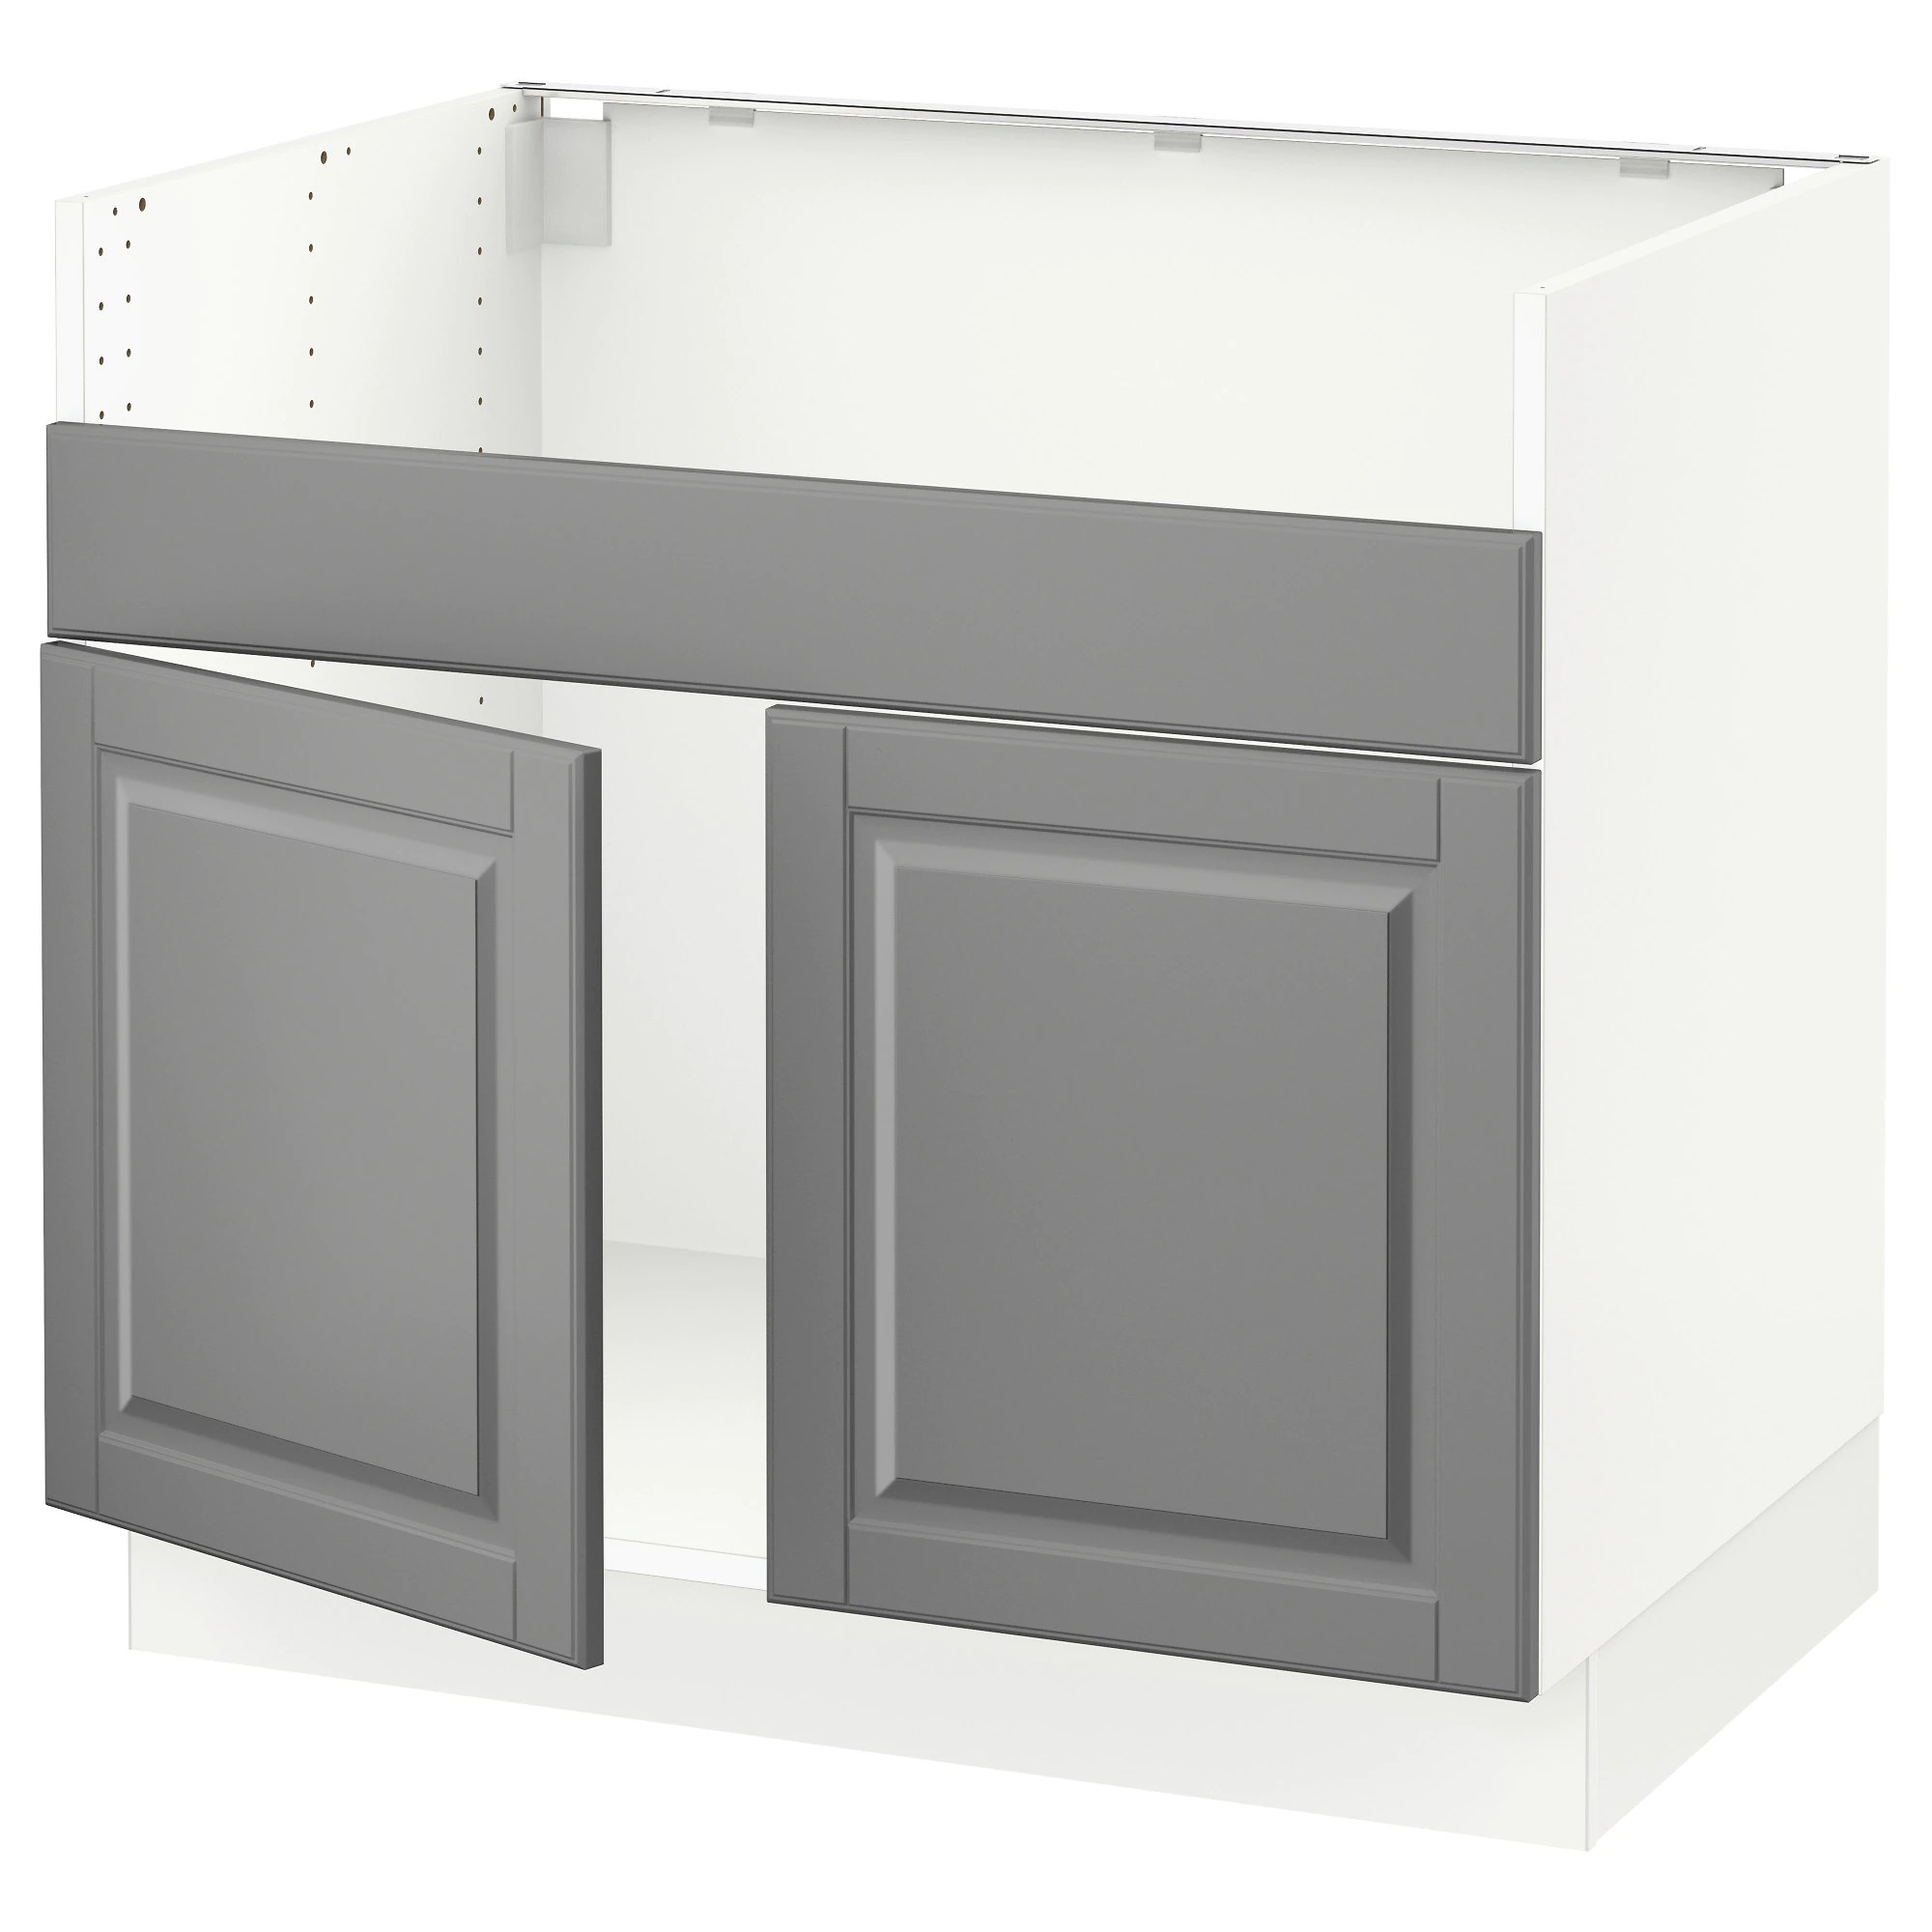 S Kitchen Cabinets ☆▻ kitchen cabinet : freedom kitchen sink cabinets product